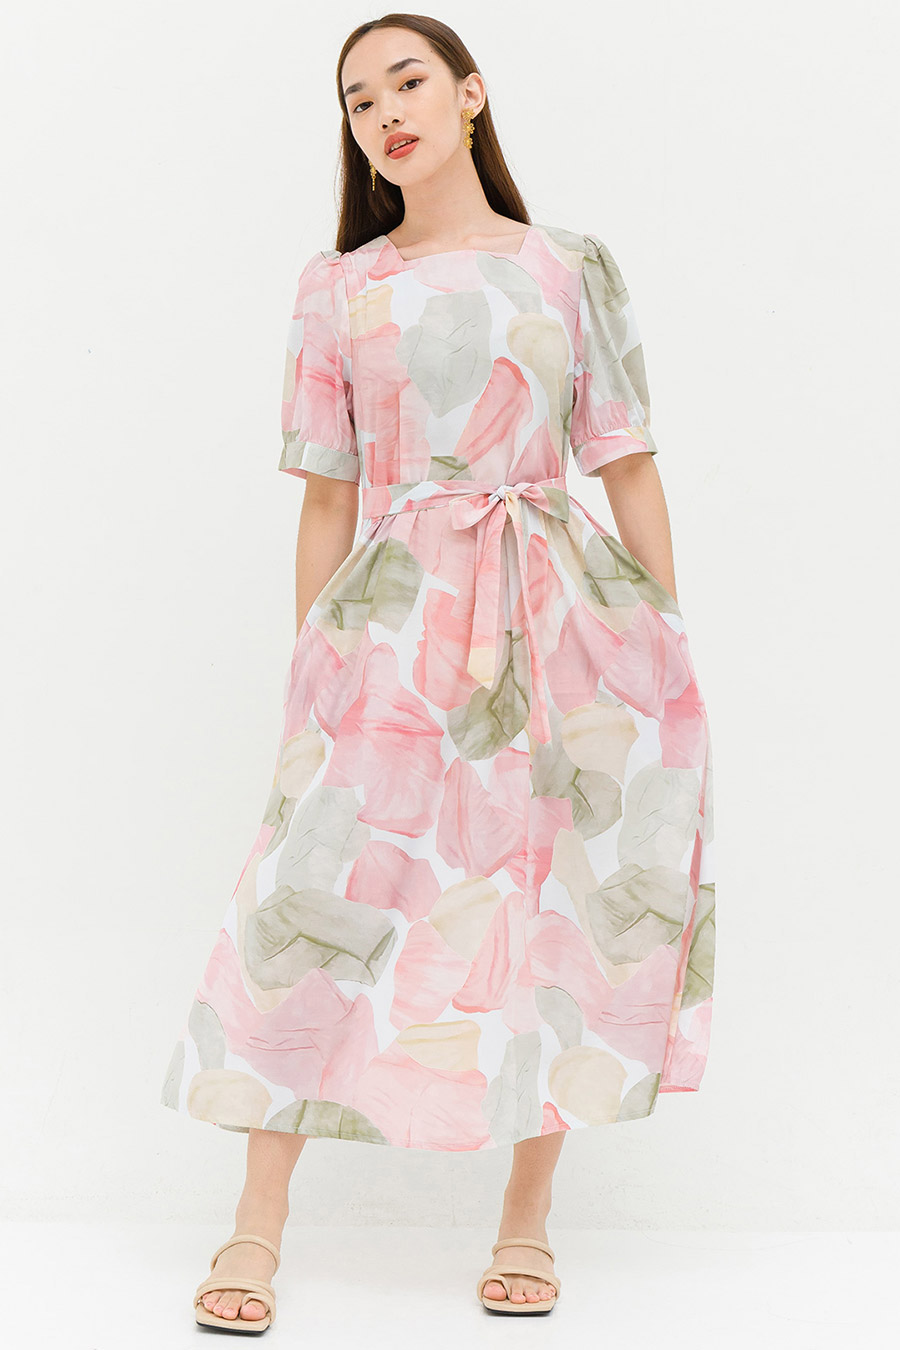 BLAIR DRESS - PETALS